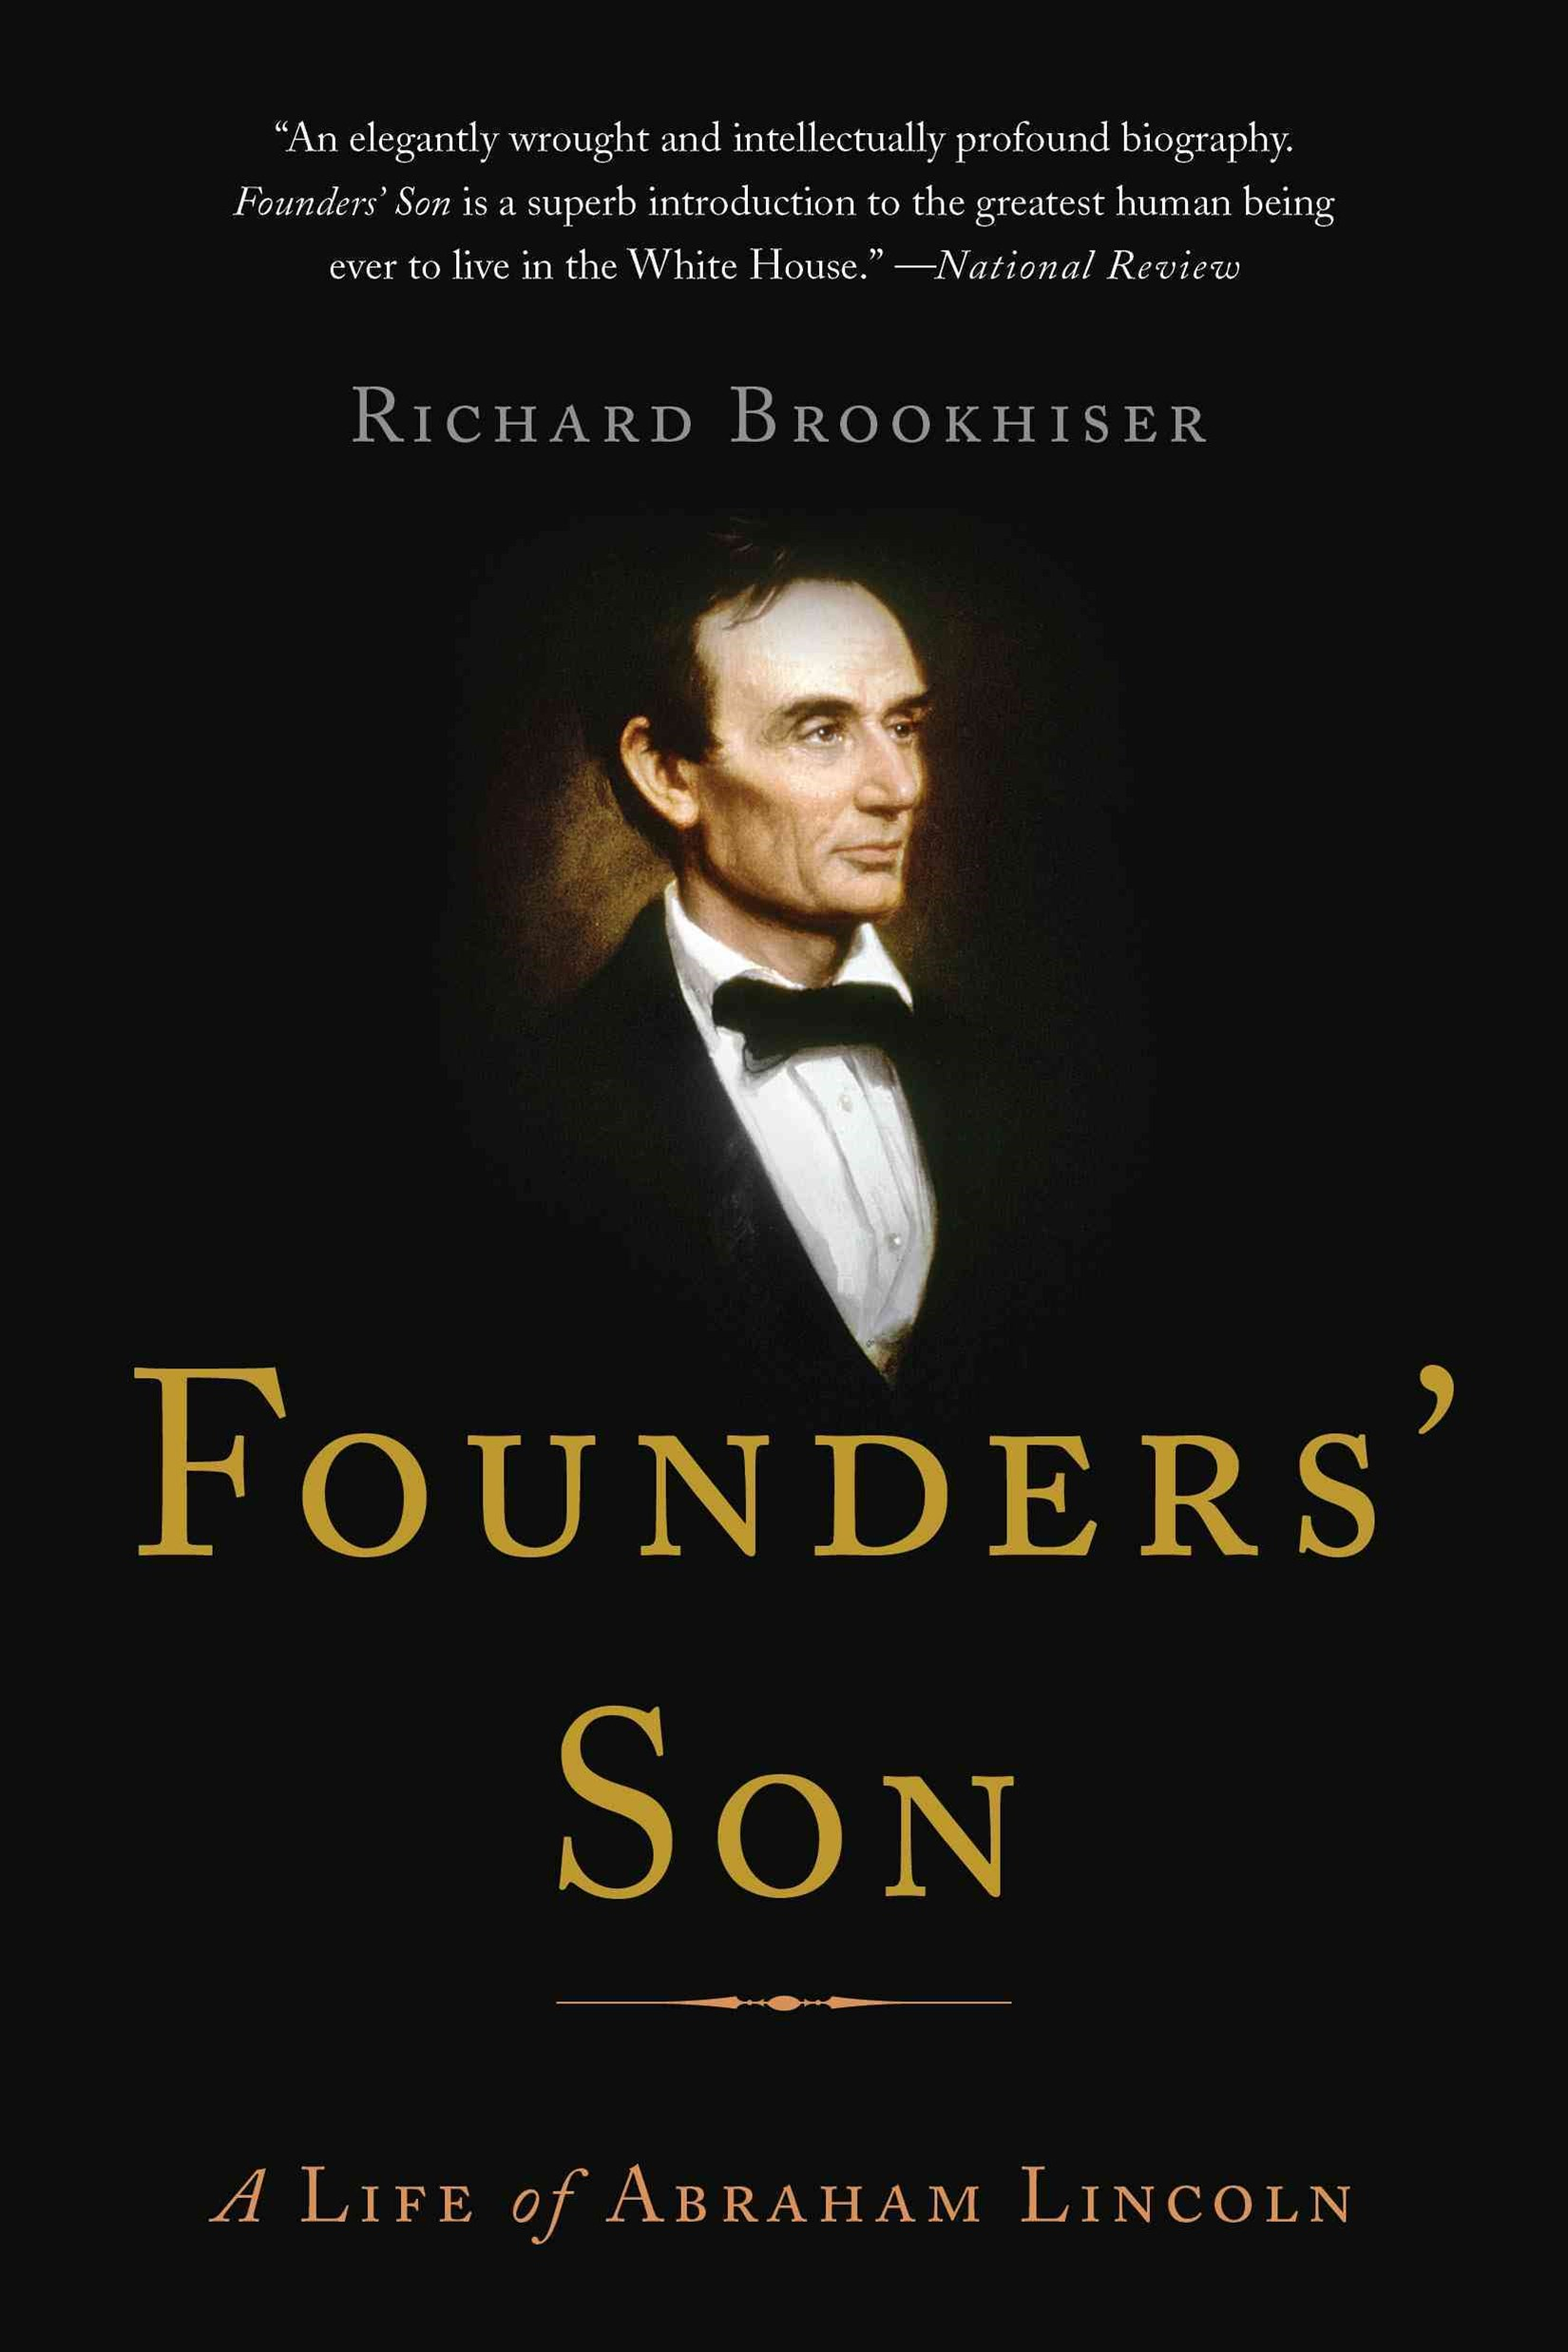 Founders' Son